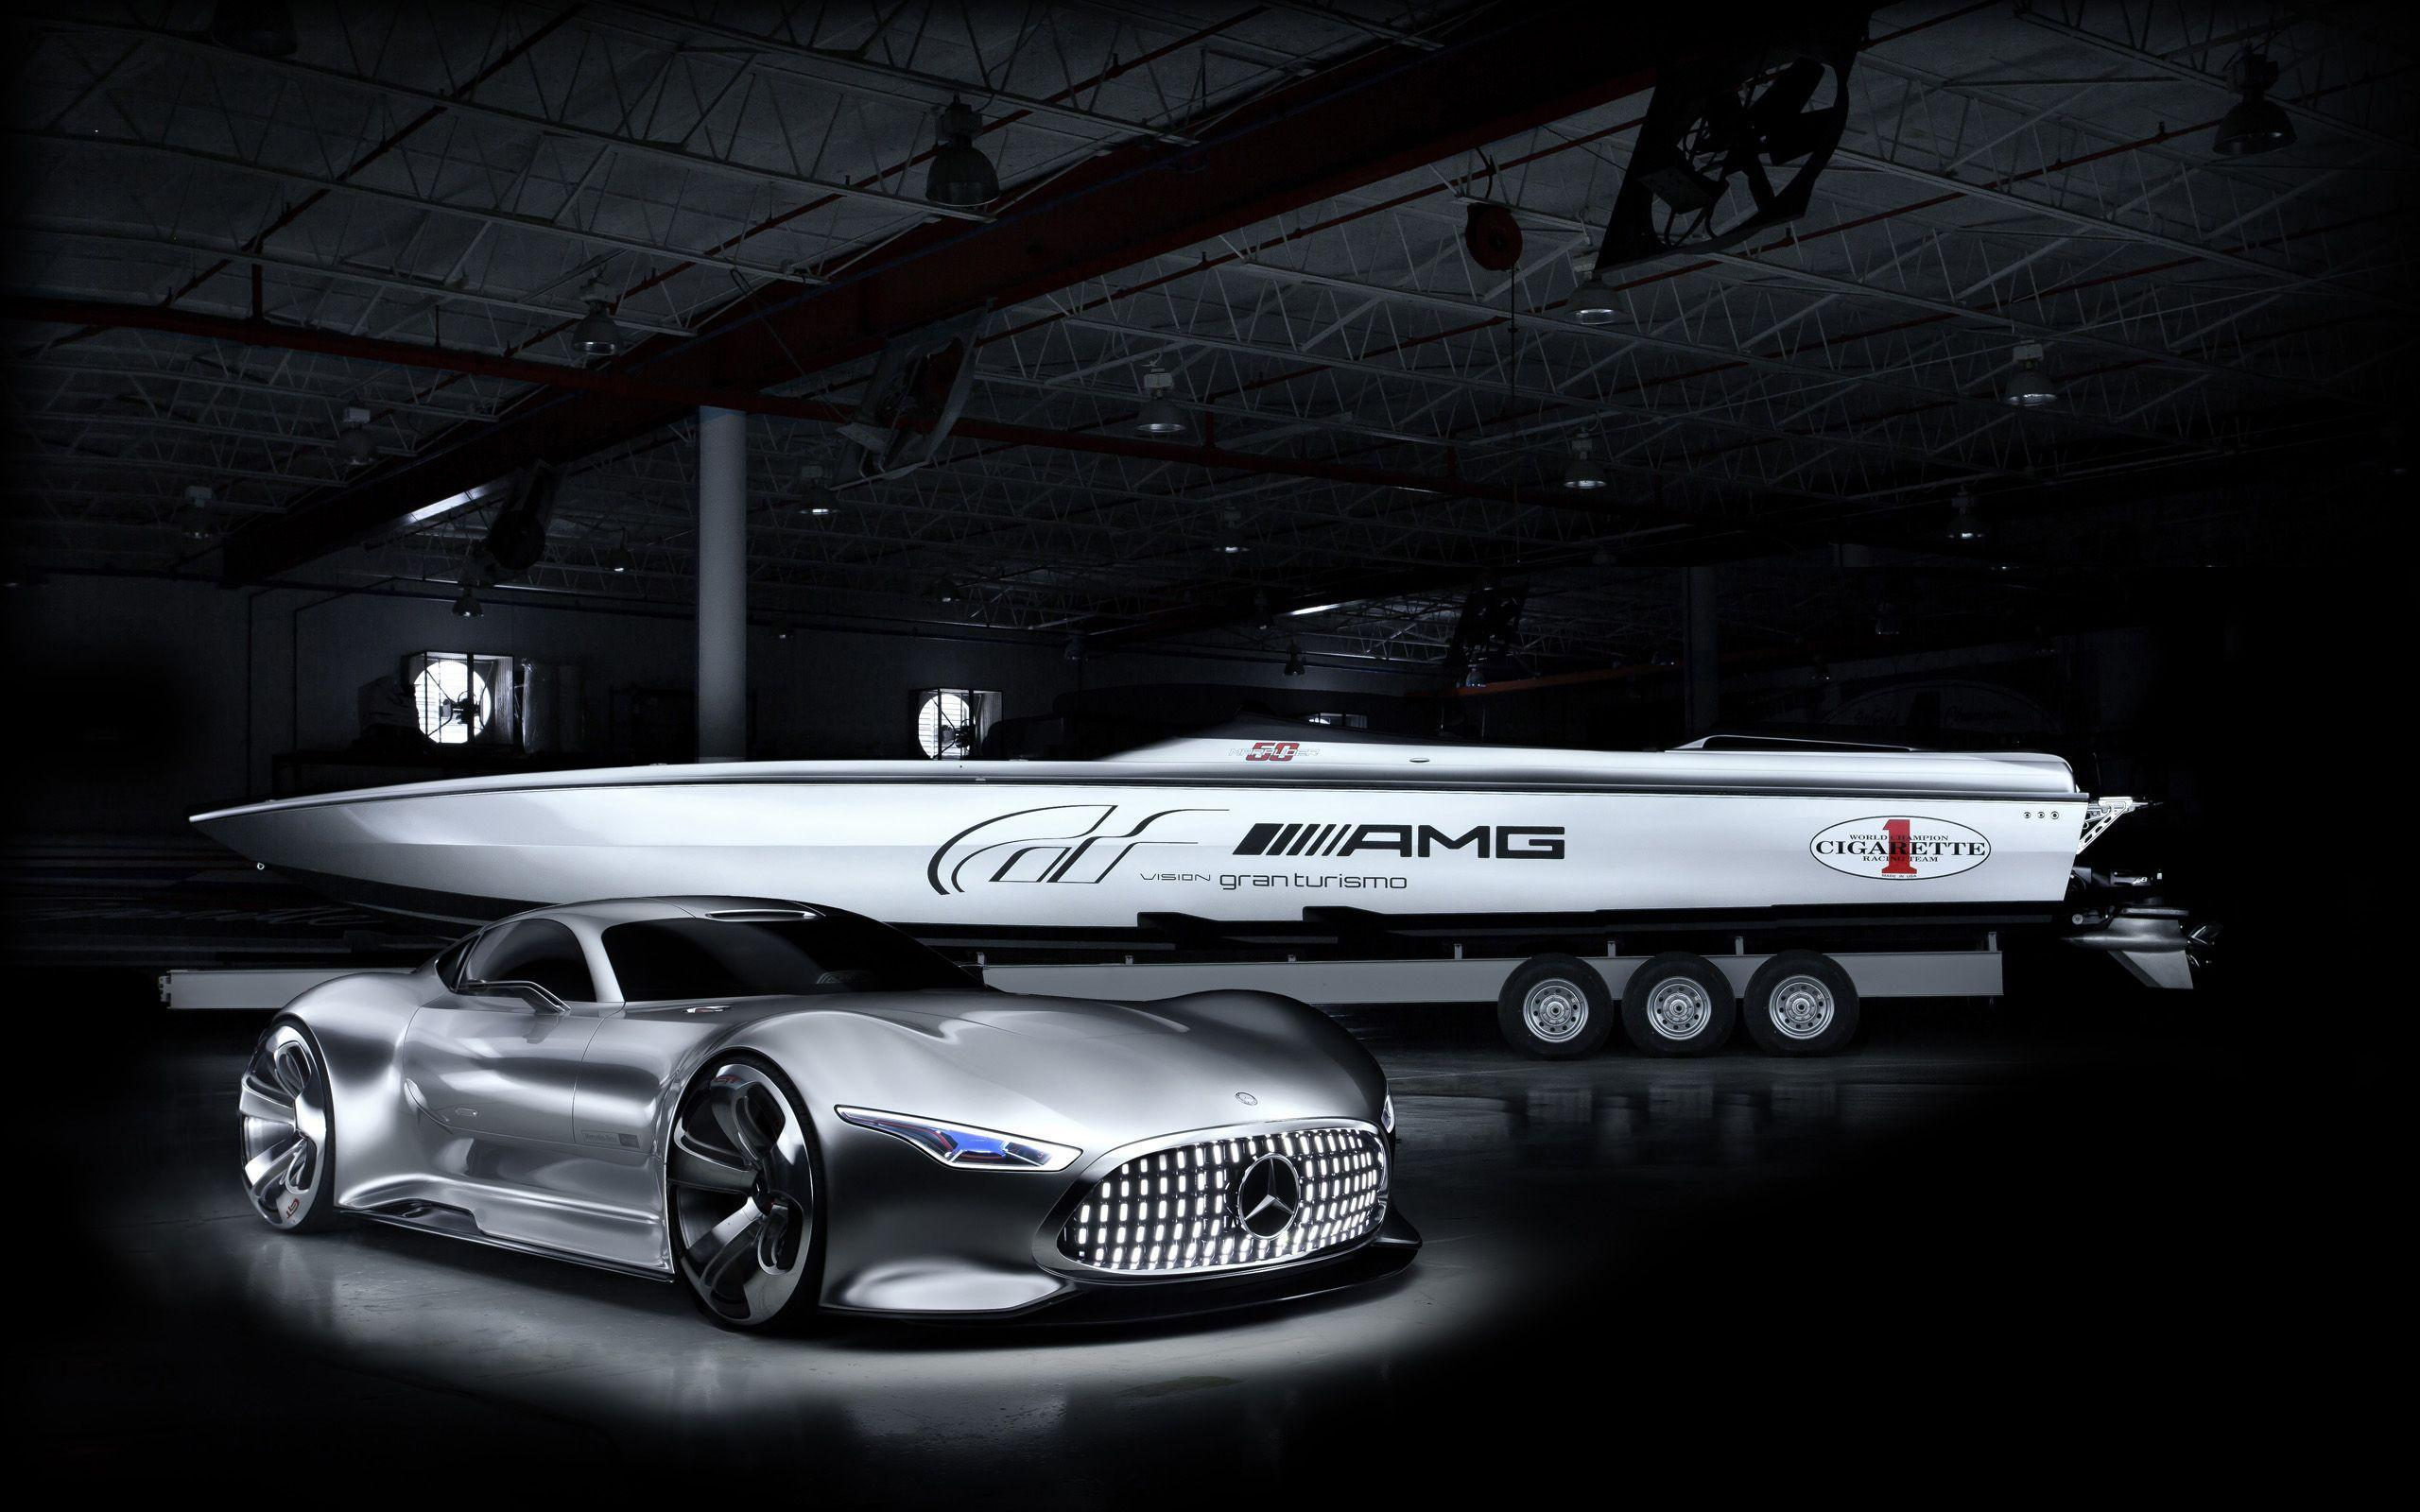 2014 Cigarette Racing Vision GT Mercedes Benz Wallpapers